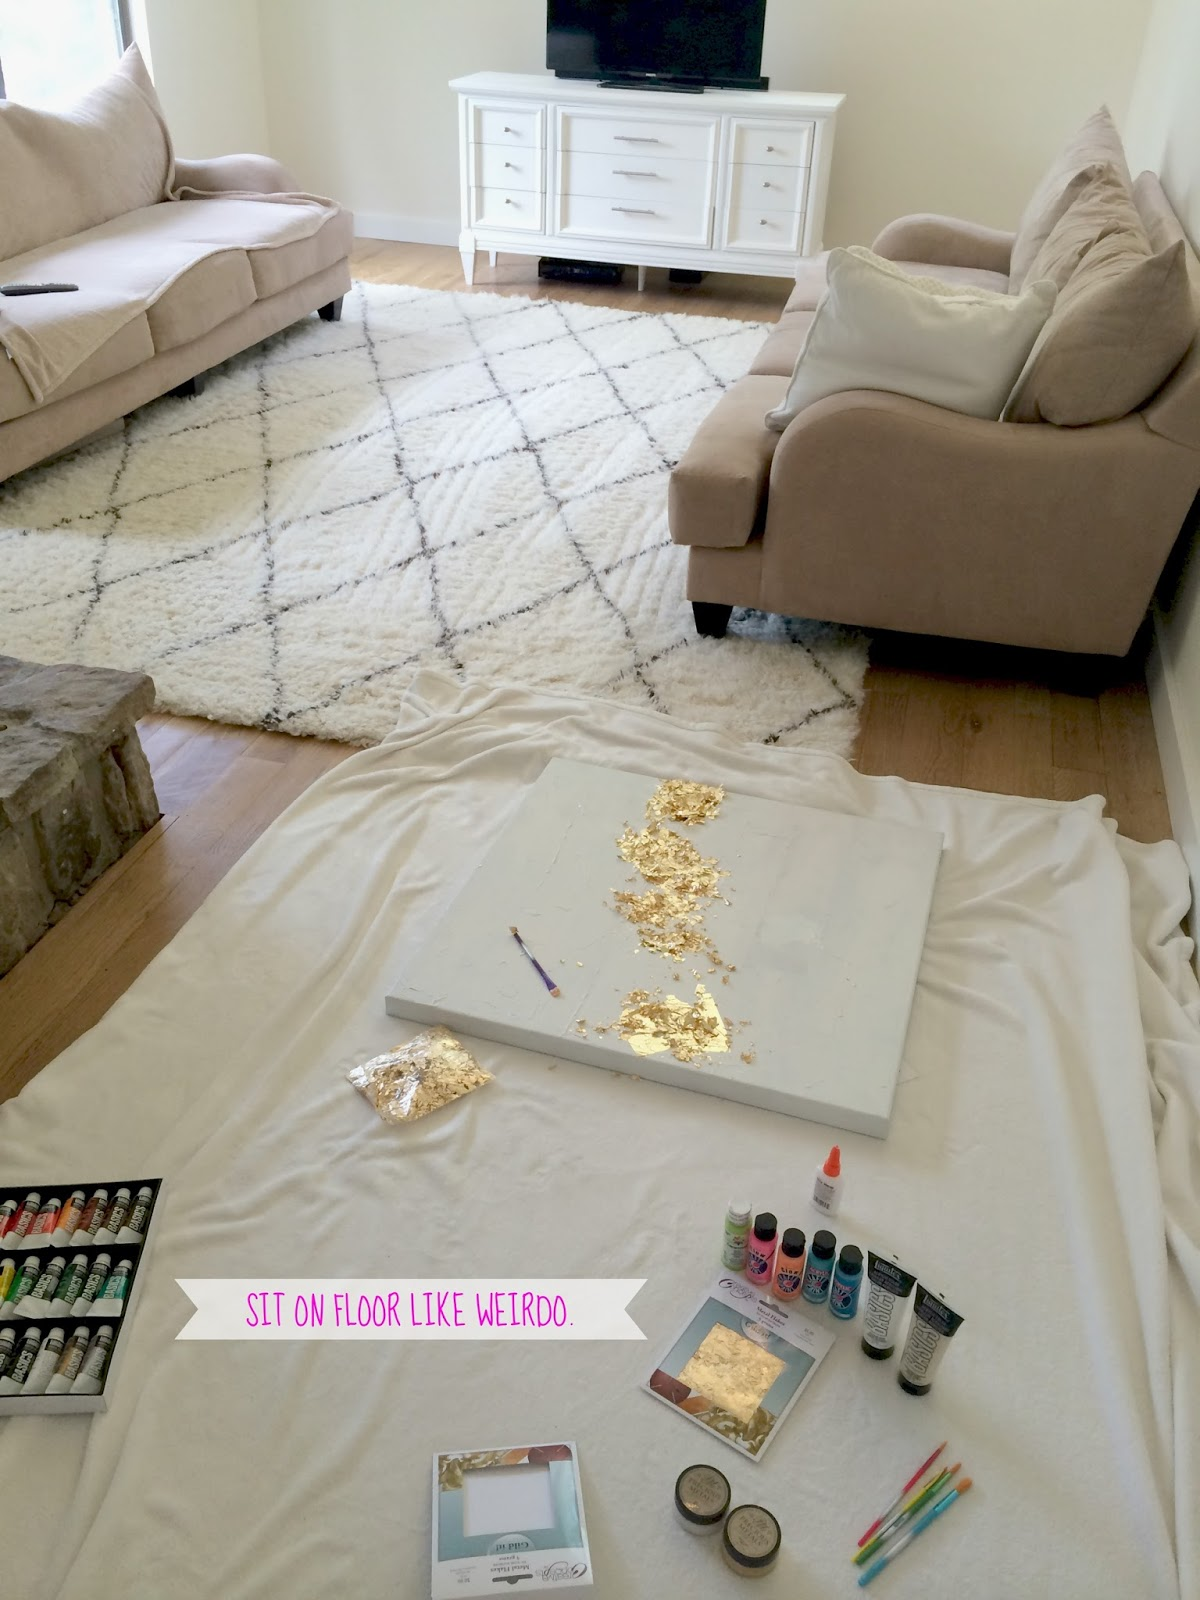 Livelovediy how to make gold leaf art round two next i applied the gold leaf the store was out of gold leaf sheets like i usually use so i had to use gold leaf flakes i wasnt sure how it would gumiabroncs Choice Image